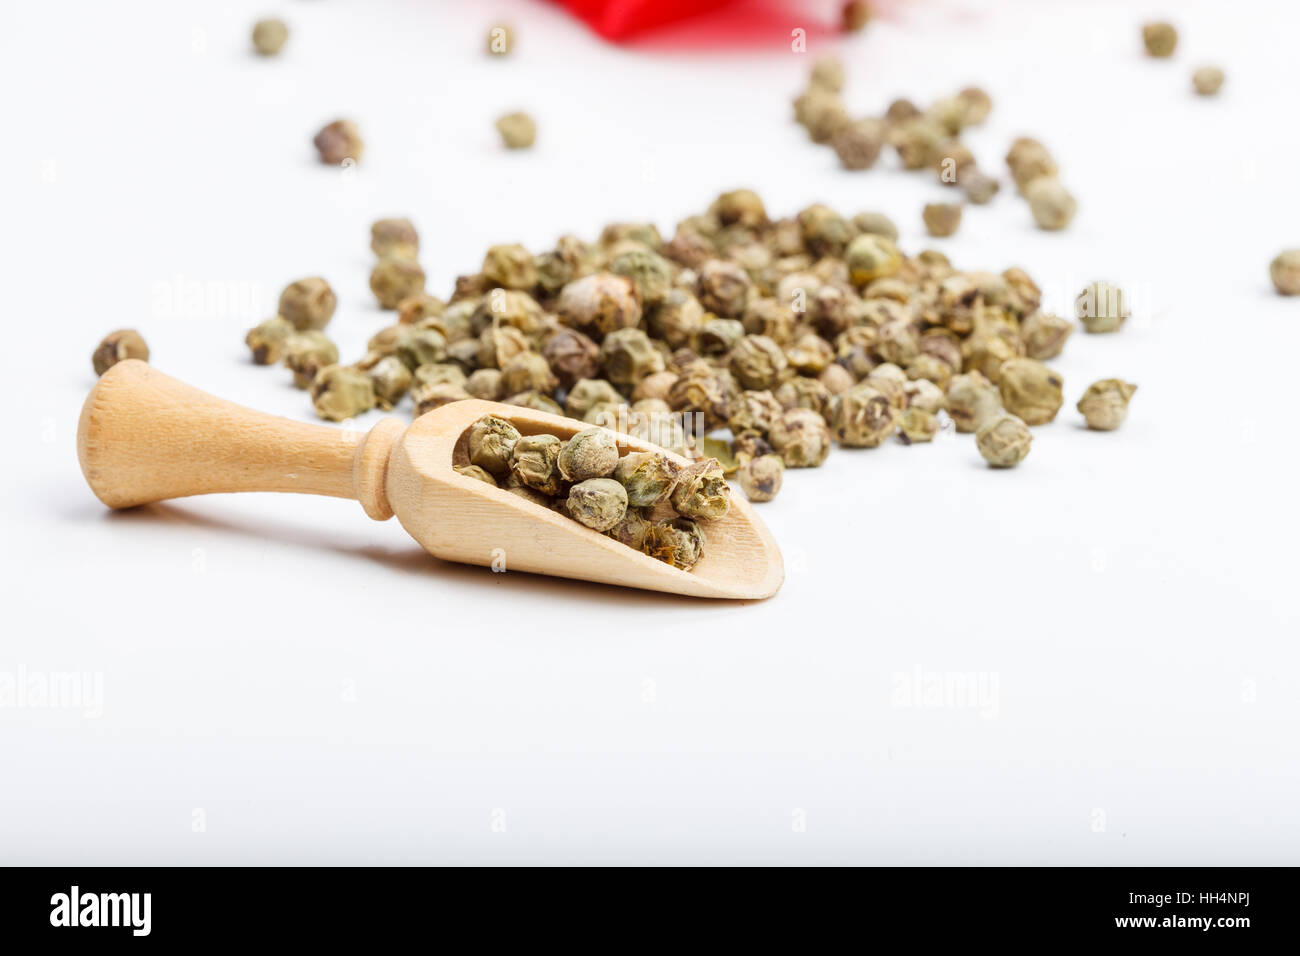 Green peppercorn seeds on white table with wooden handmade rustic scoop and a red fabric - Stock Image